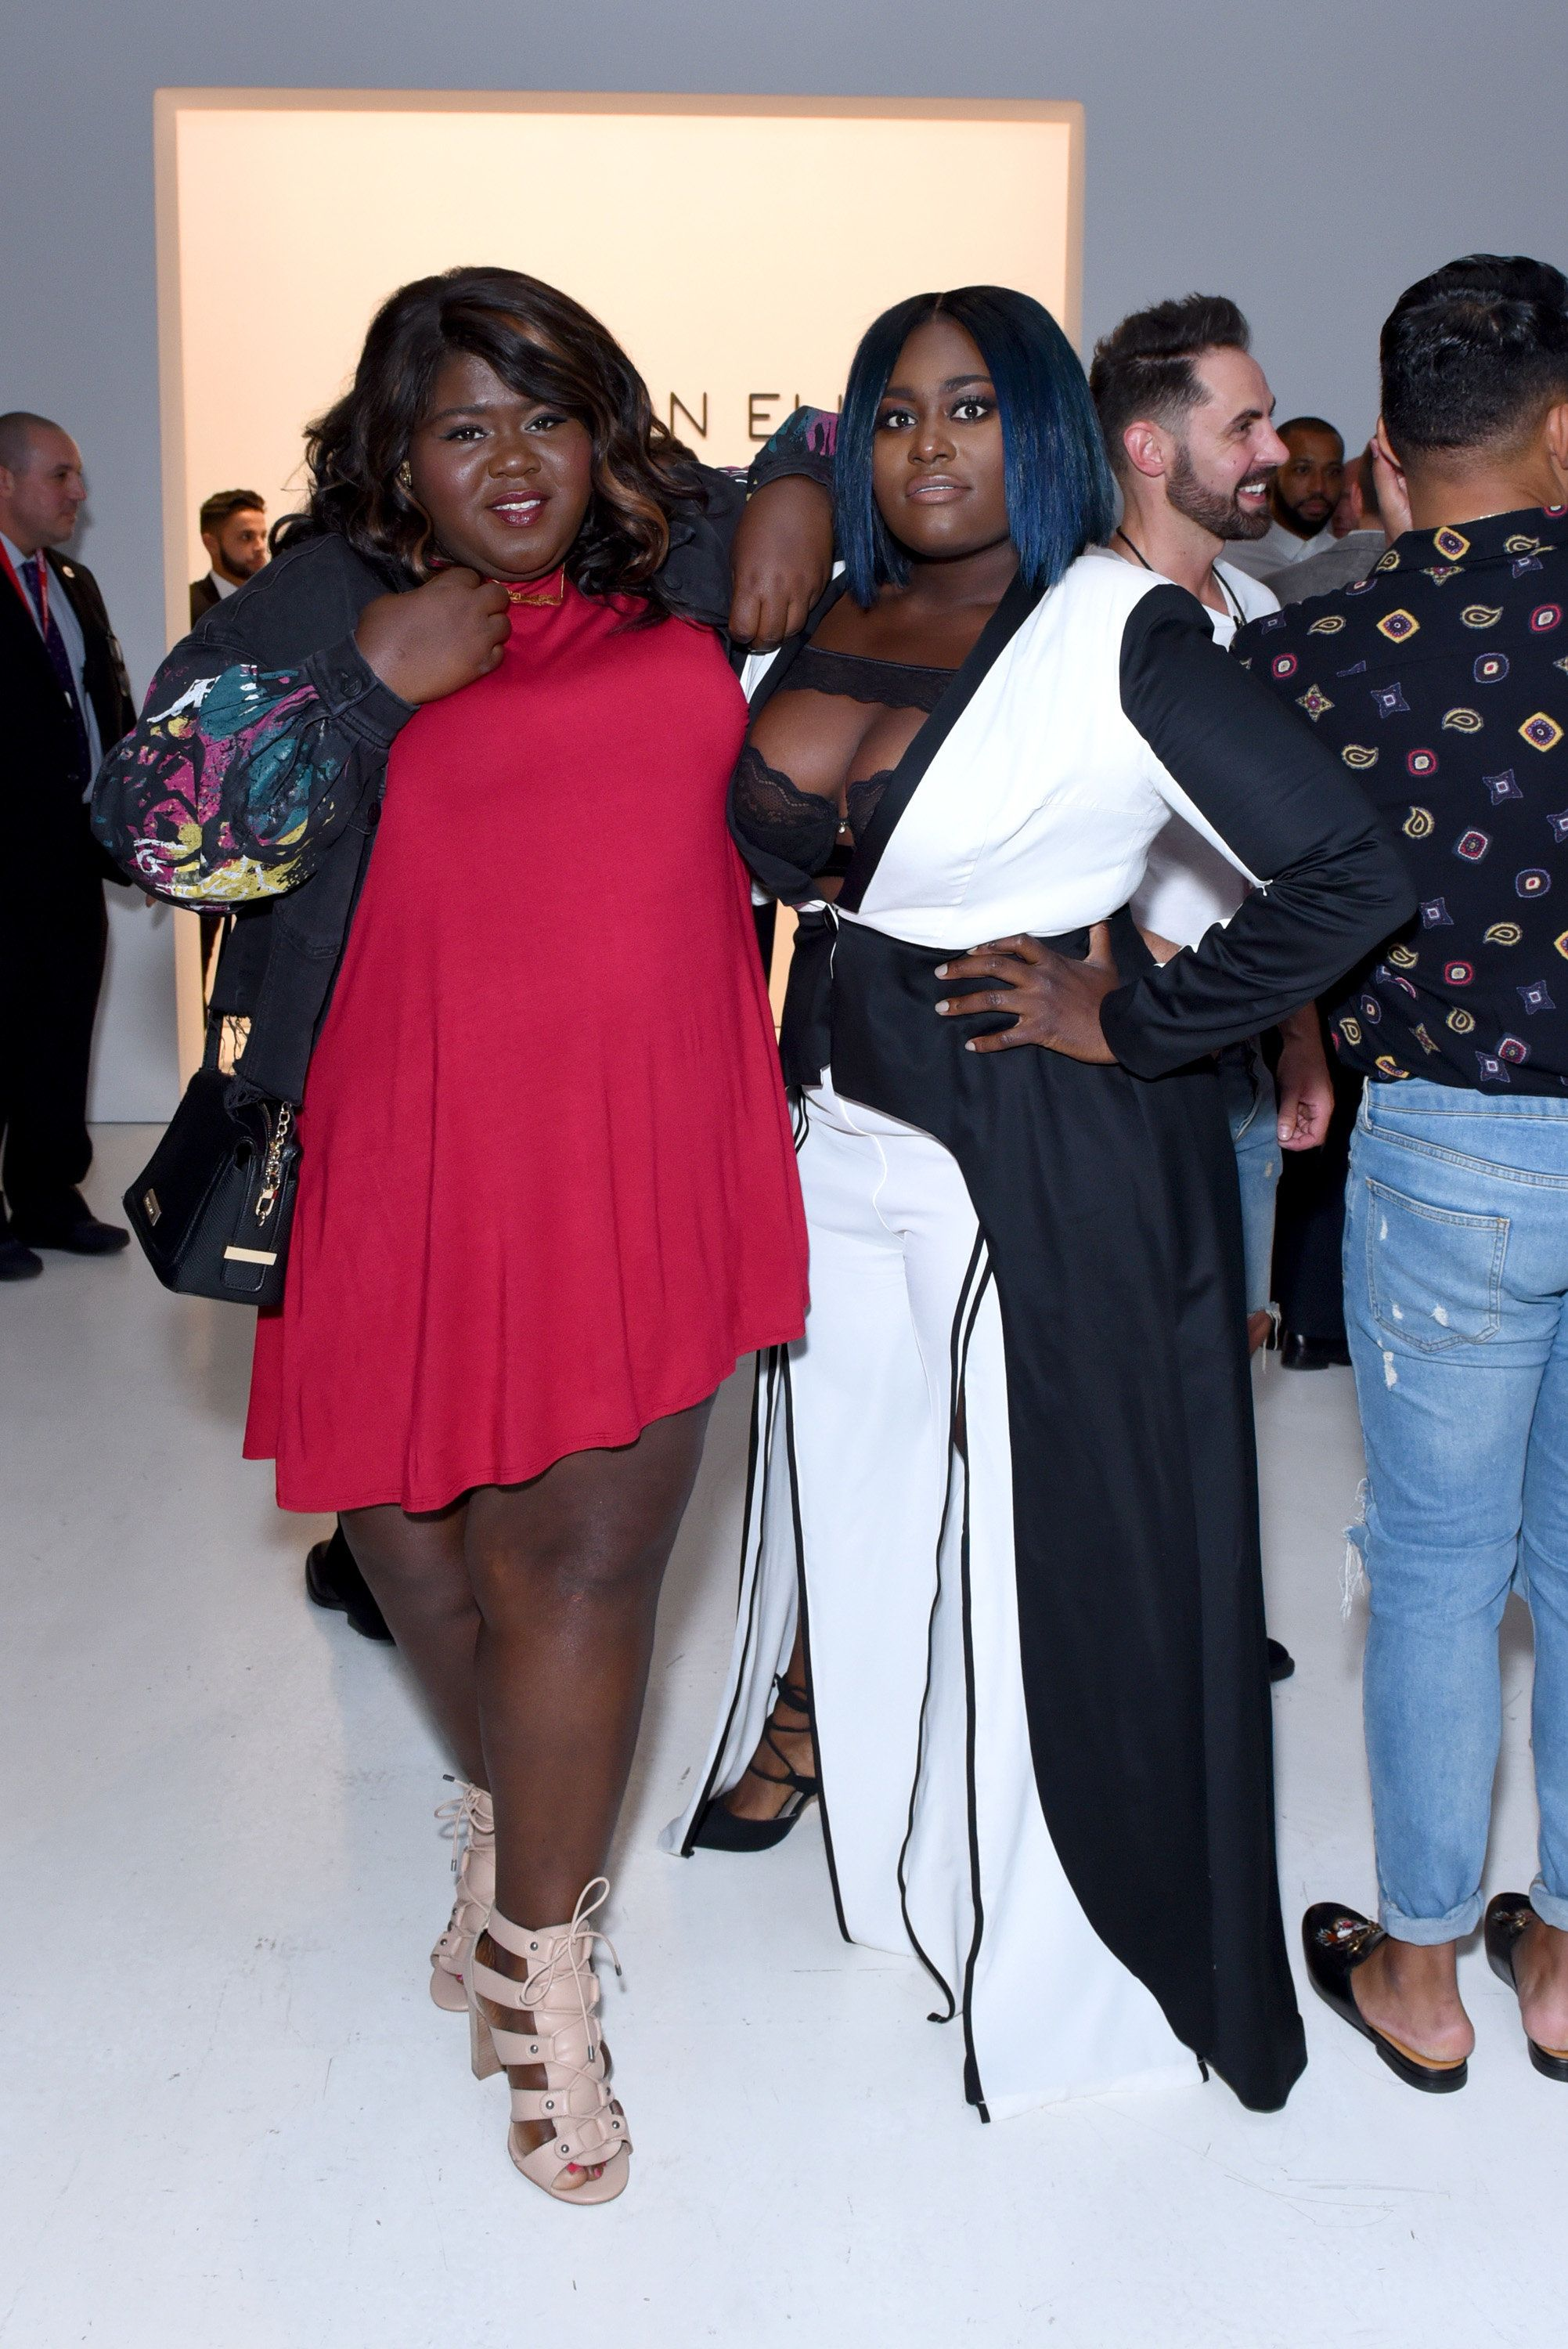 141898fbc58 Gabourey Sidibe and Danielle Brooks | Another New York Fashion Week season  is upon us and as expected, some of our favorite celebrities are sashaying  their ...